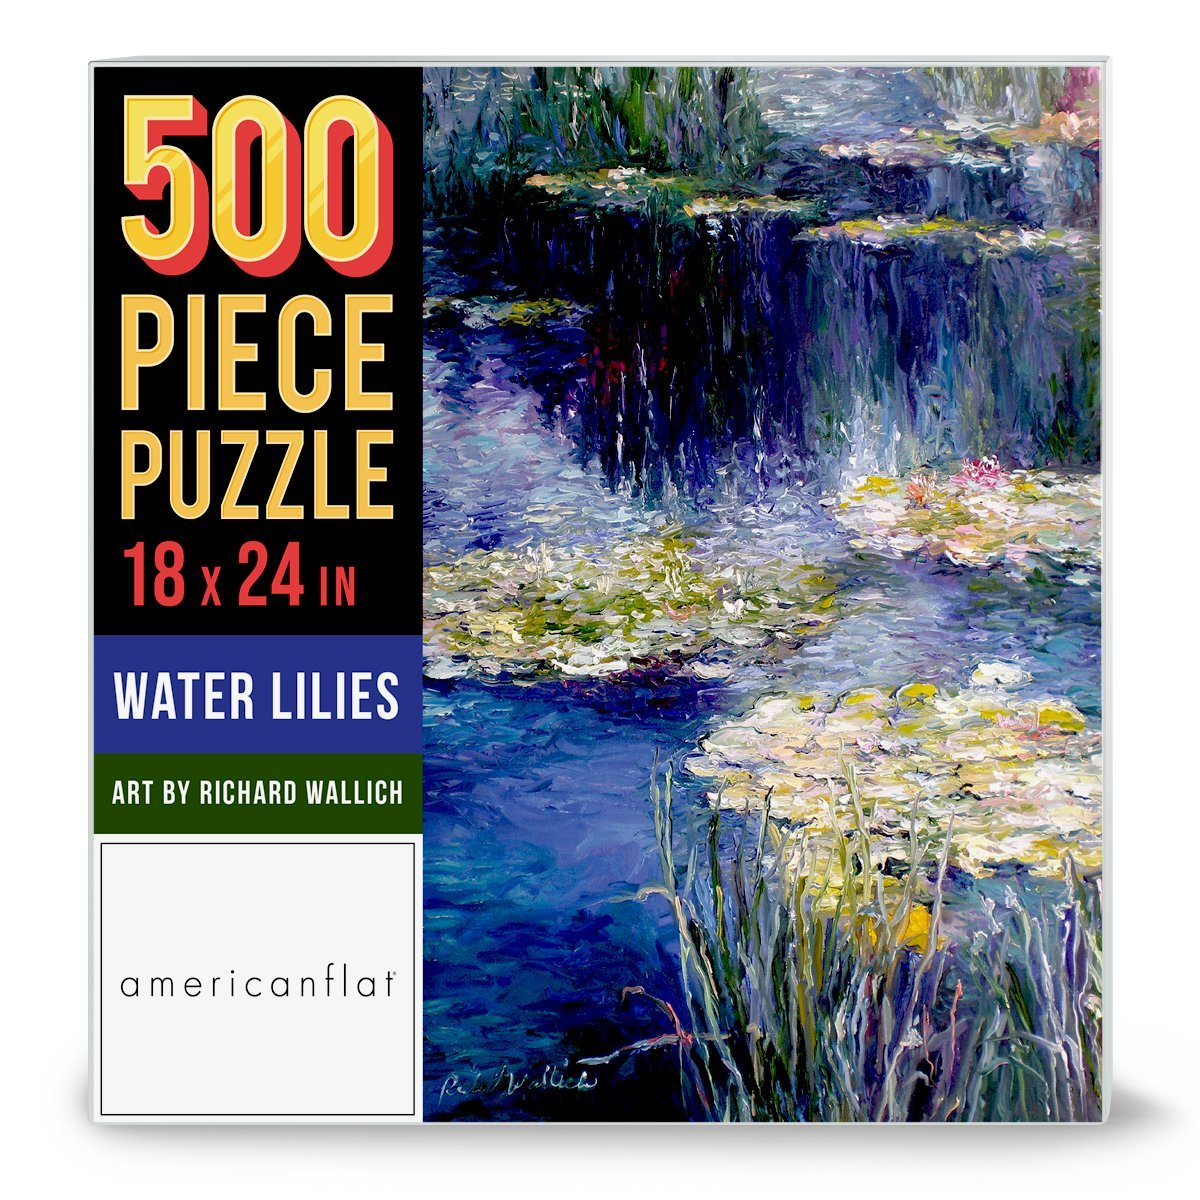 "500 Piece Jigsaw Puzzle, 18x24 Inches, ""Water Lilies"" Artwork by Richard Wallich - Jigsaw Puzzle - Americanflat"